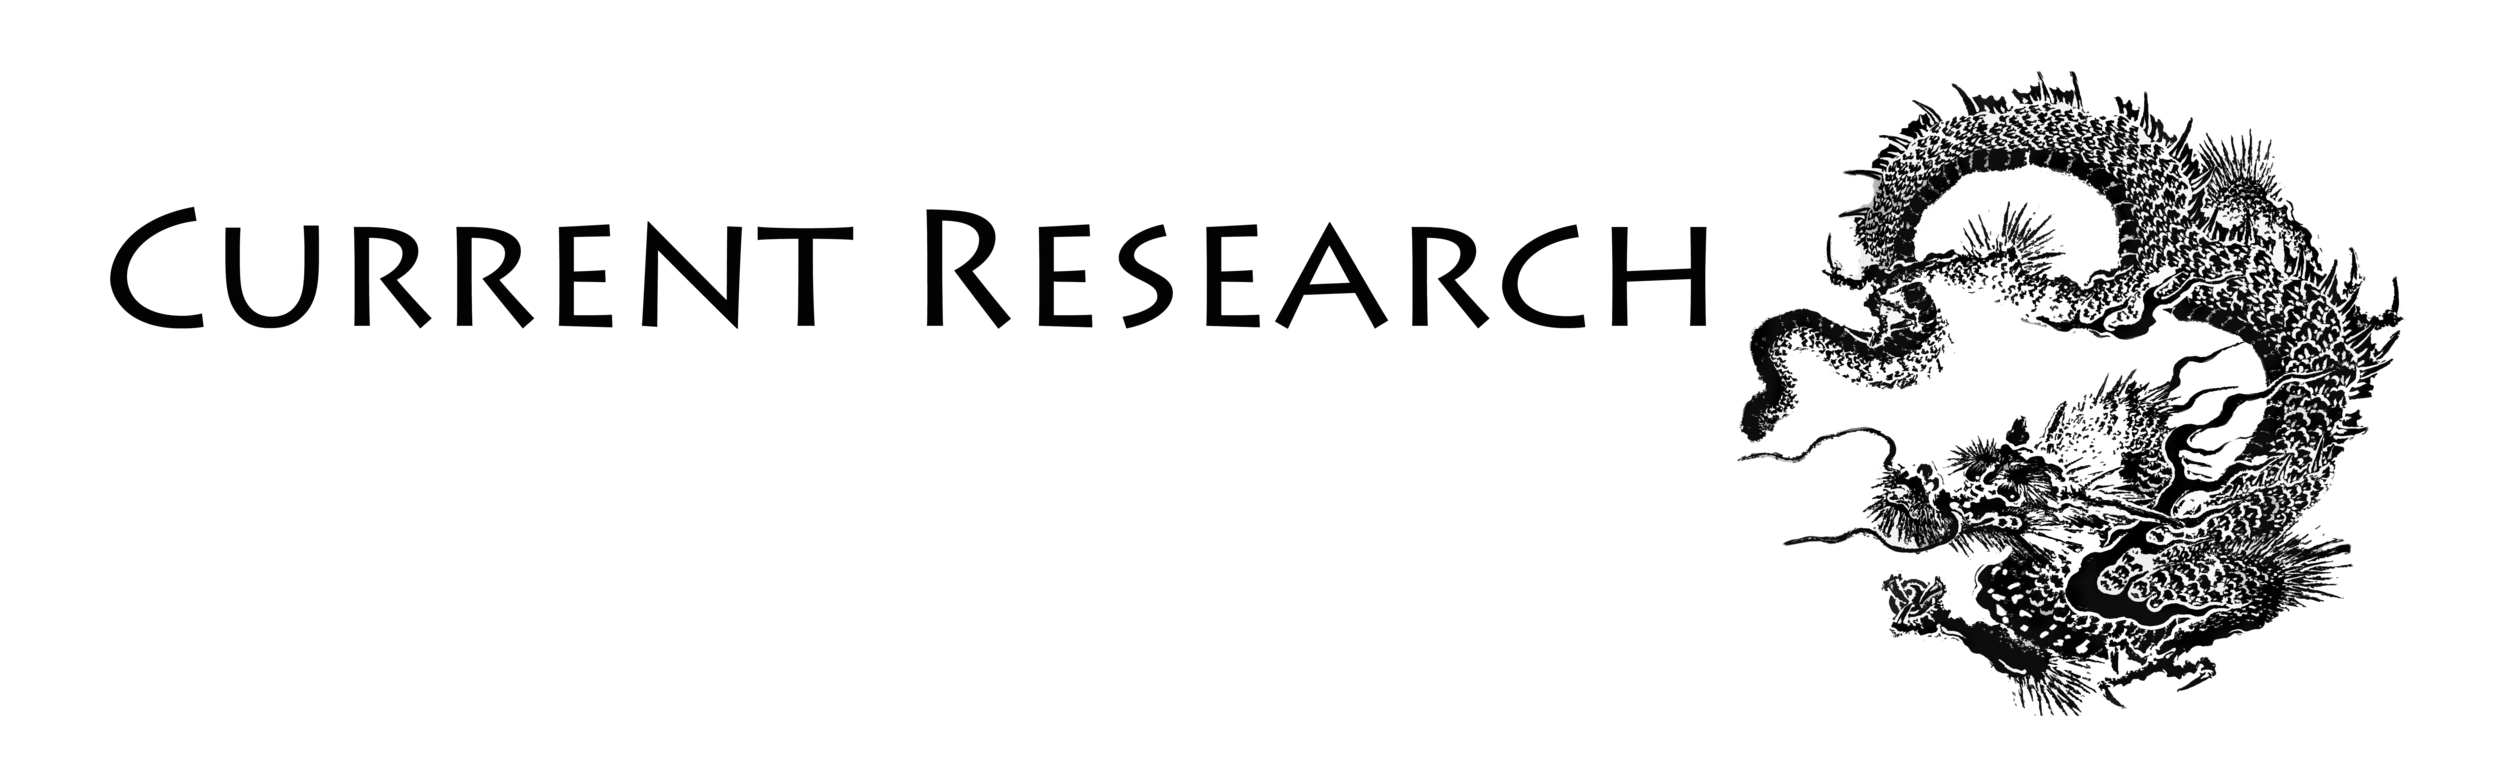 Current Research title.png